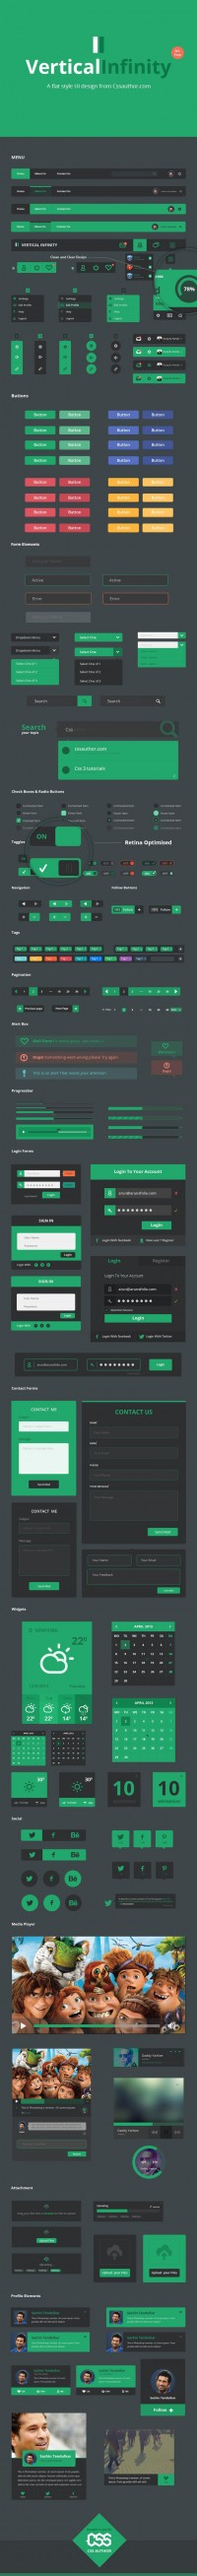 Vertical Infinity - A Mega Flat Style UI Kit for Free Download - Freebie No: 92